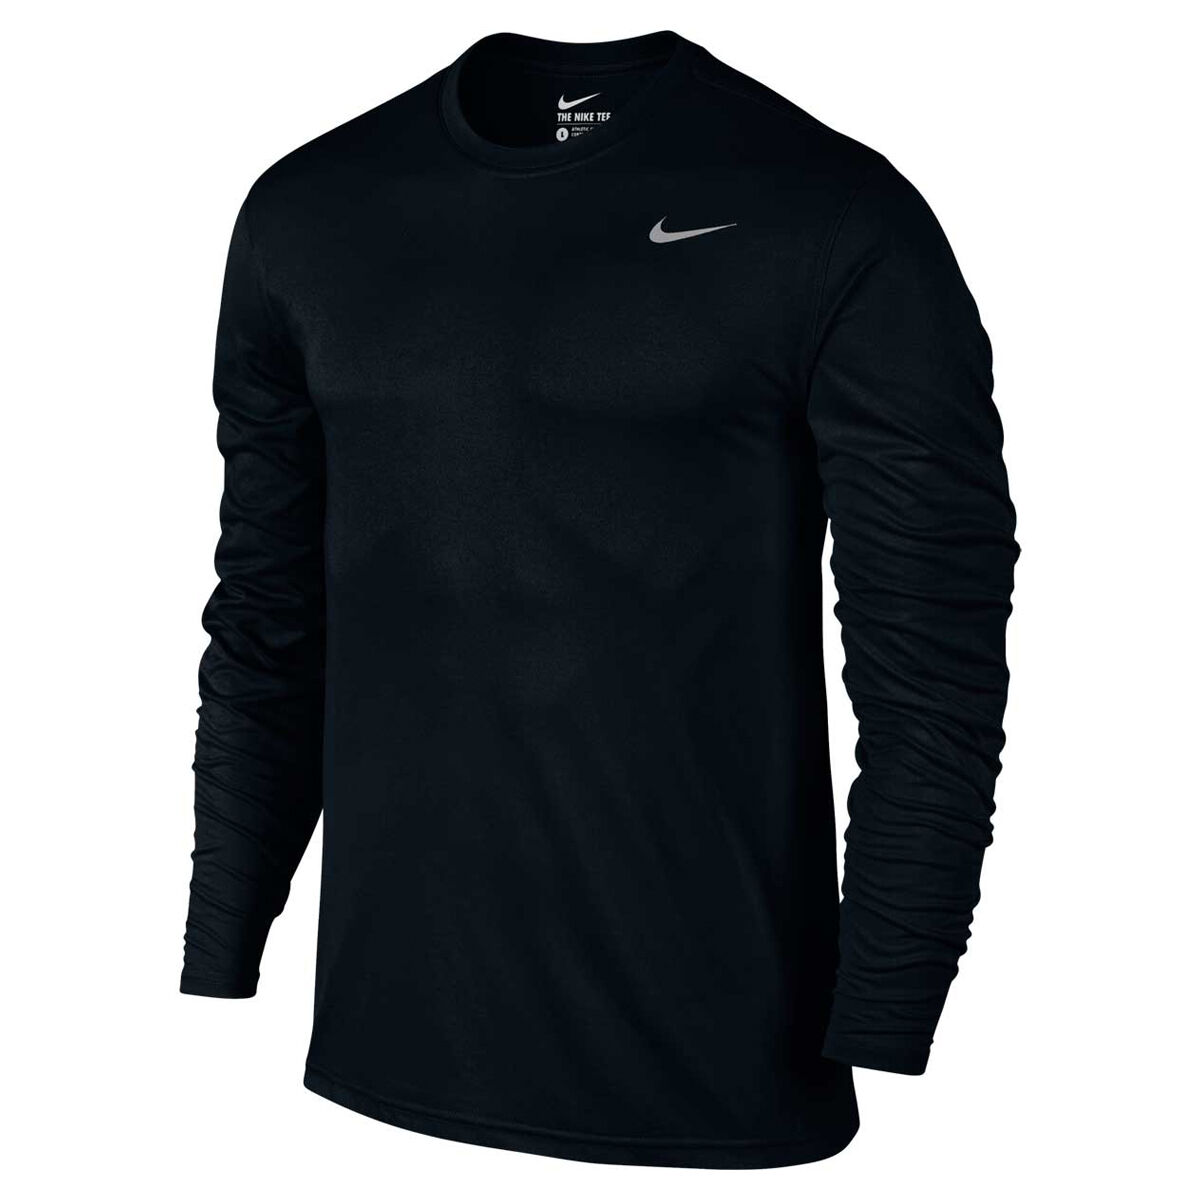 Mens Nike Sports Dry Dri Fit Running Shirt Top T-shirt Gym Training Tee S Xxl And To Have A Long Life. Men's Clothing